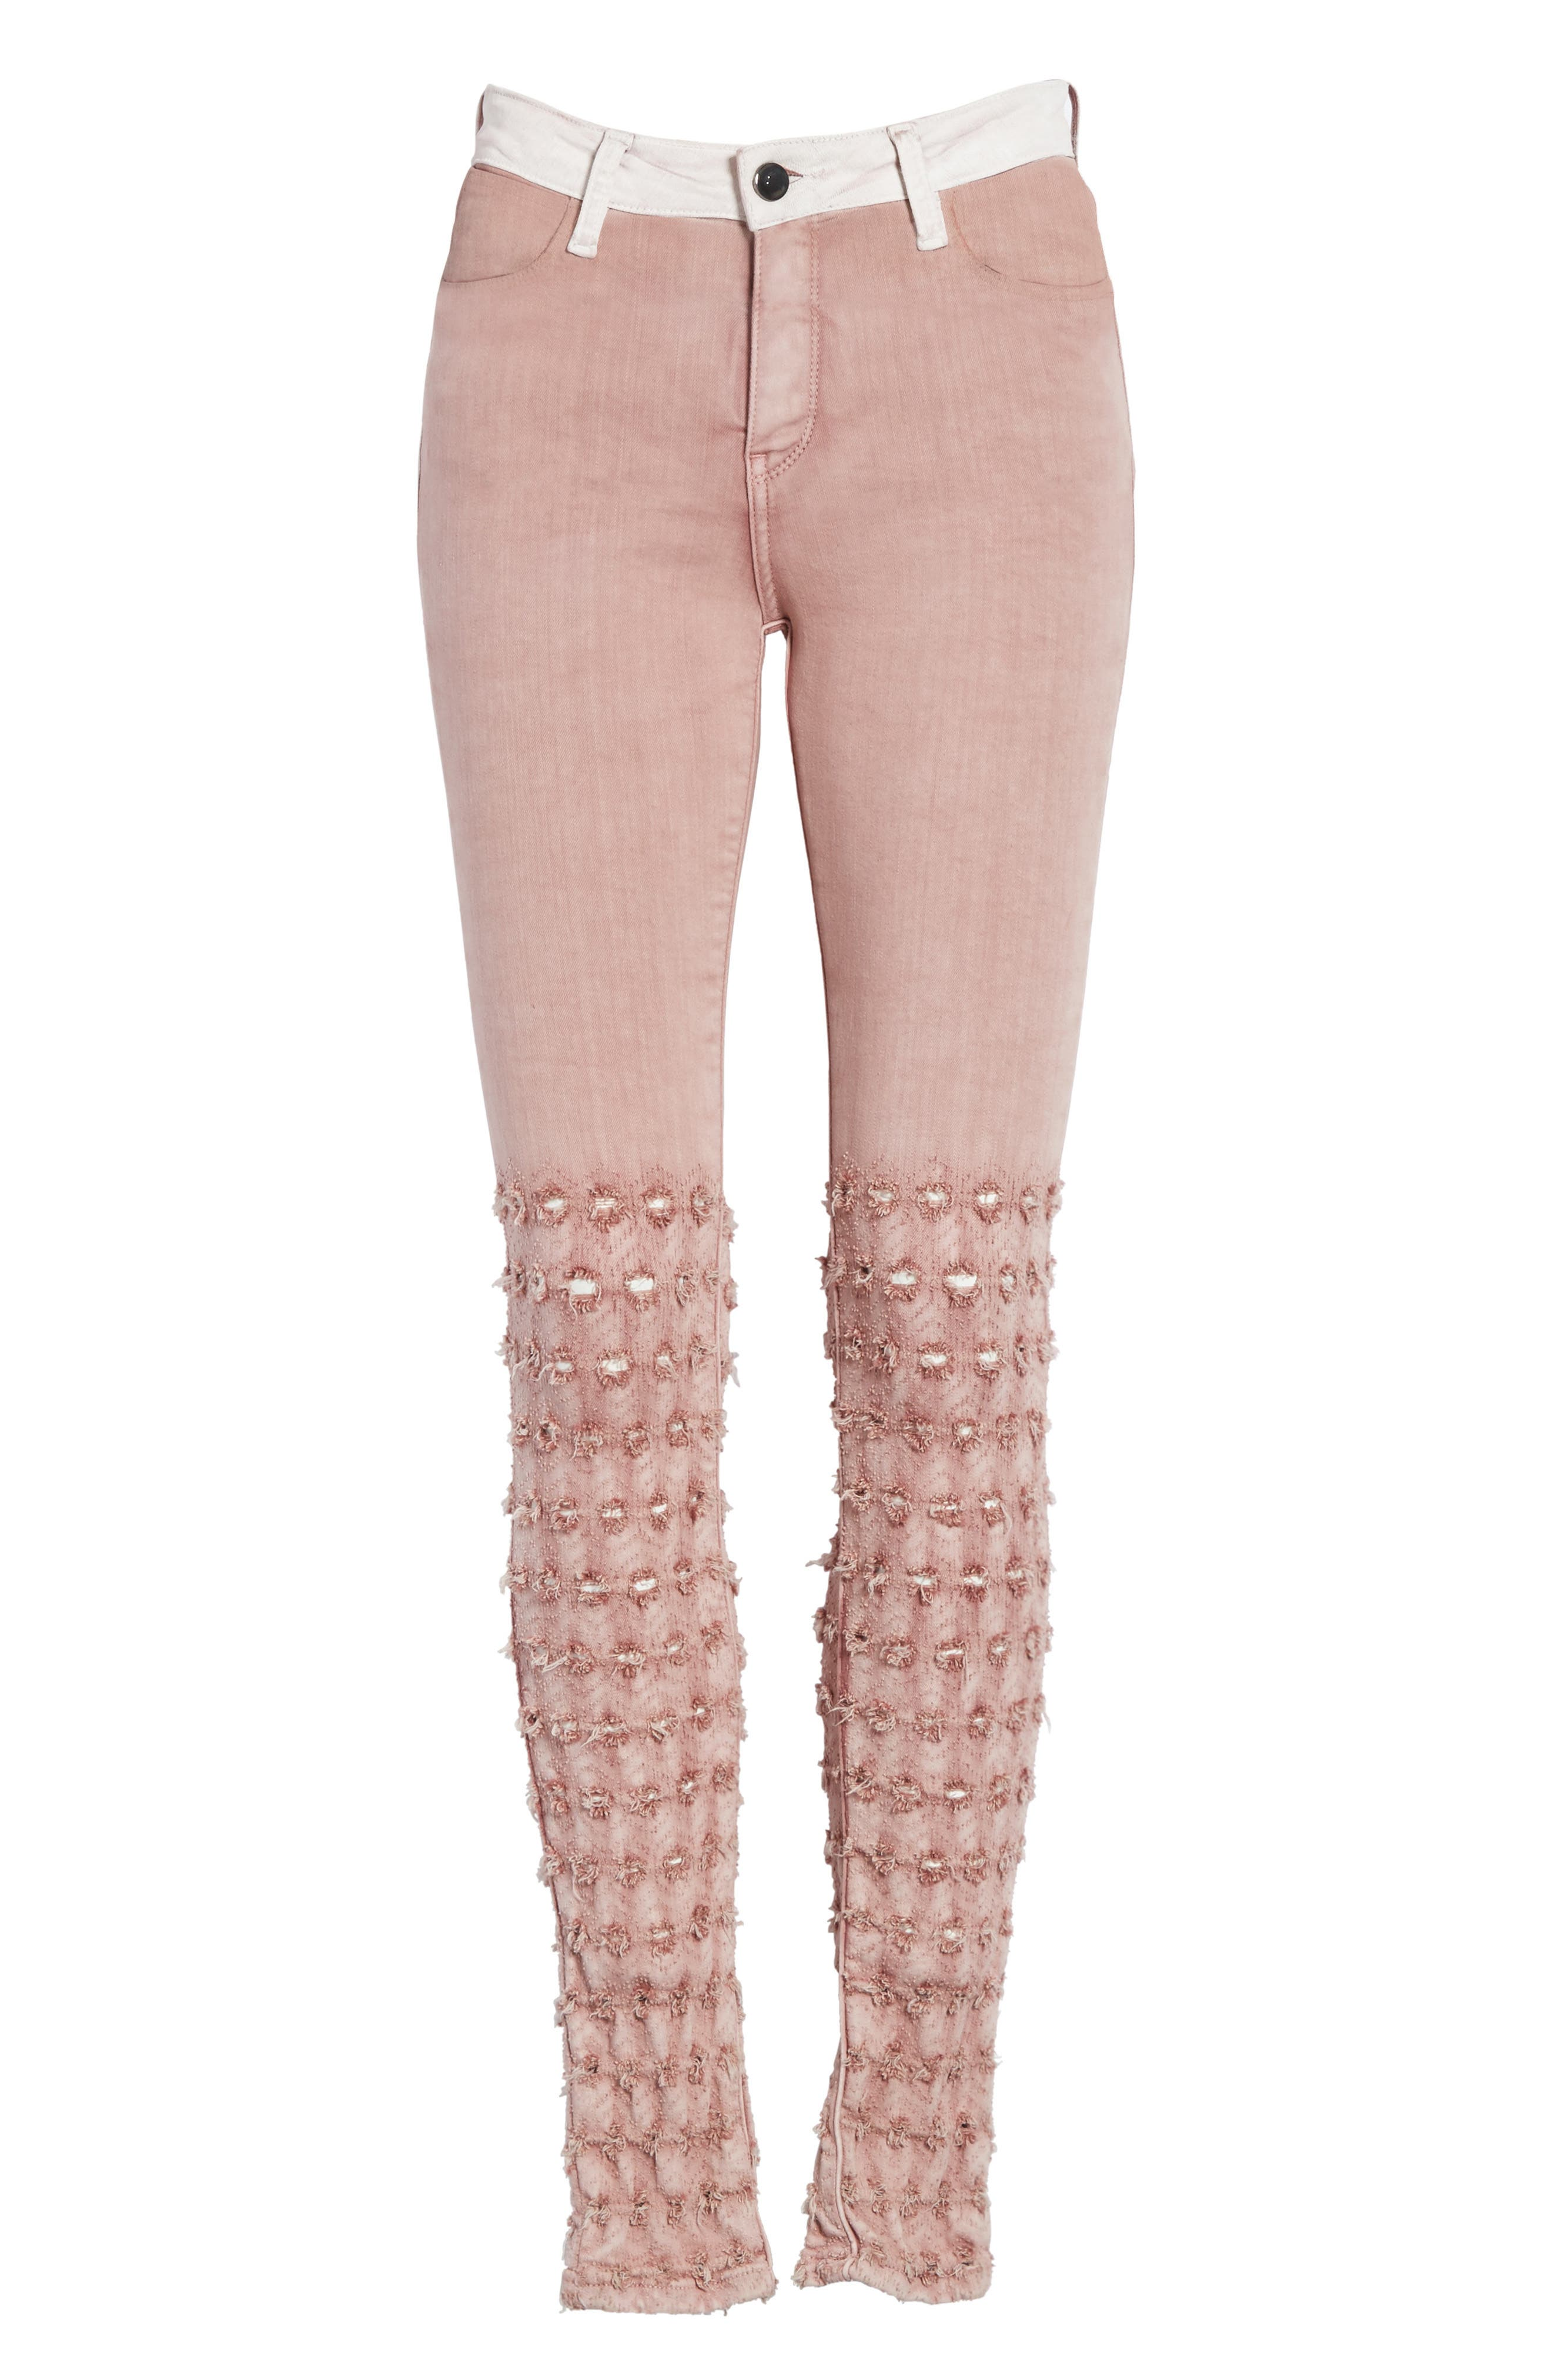 Emma Embroidered Skinny Jeans,                             Alternate thumbnail 6, color,                             Rose